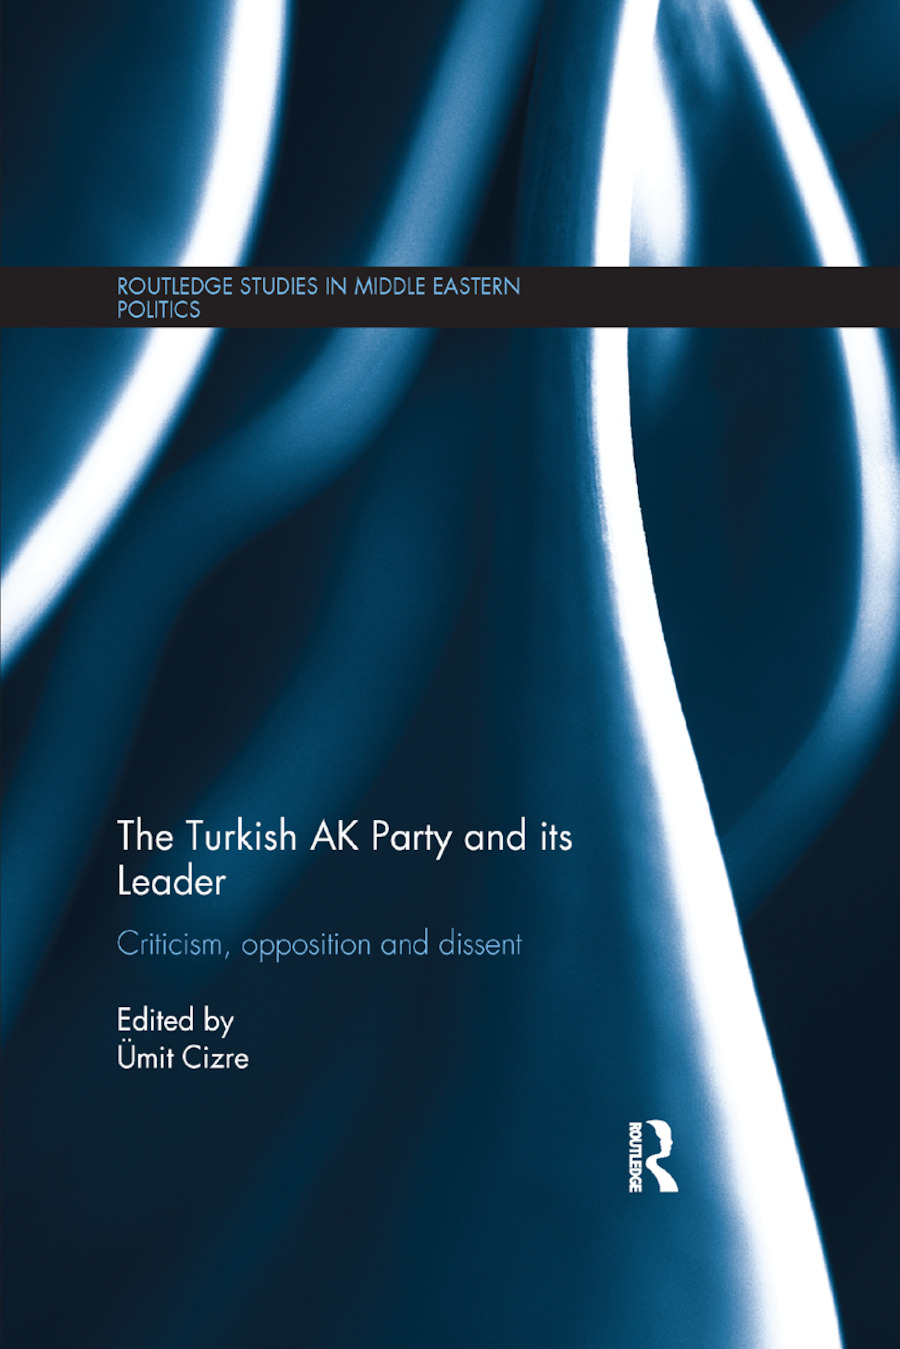 The Turkish AK Party and its Leader: Criticism, opposition and dissent book cover